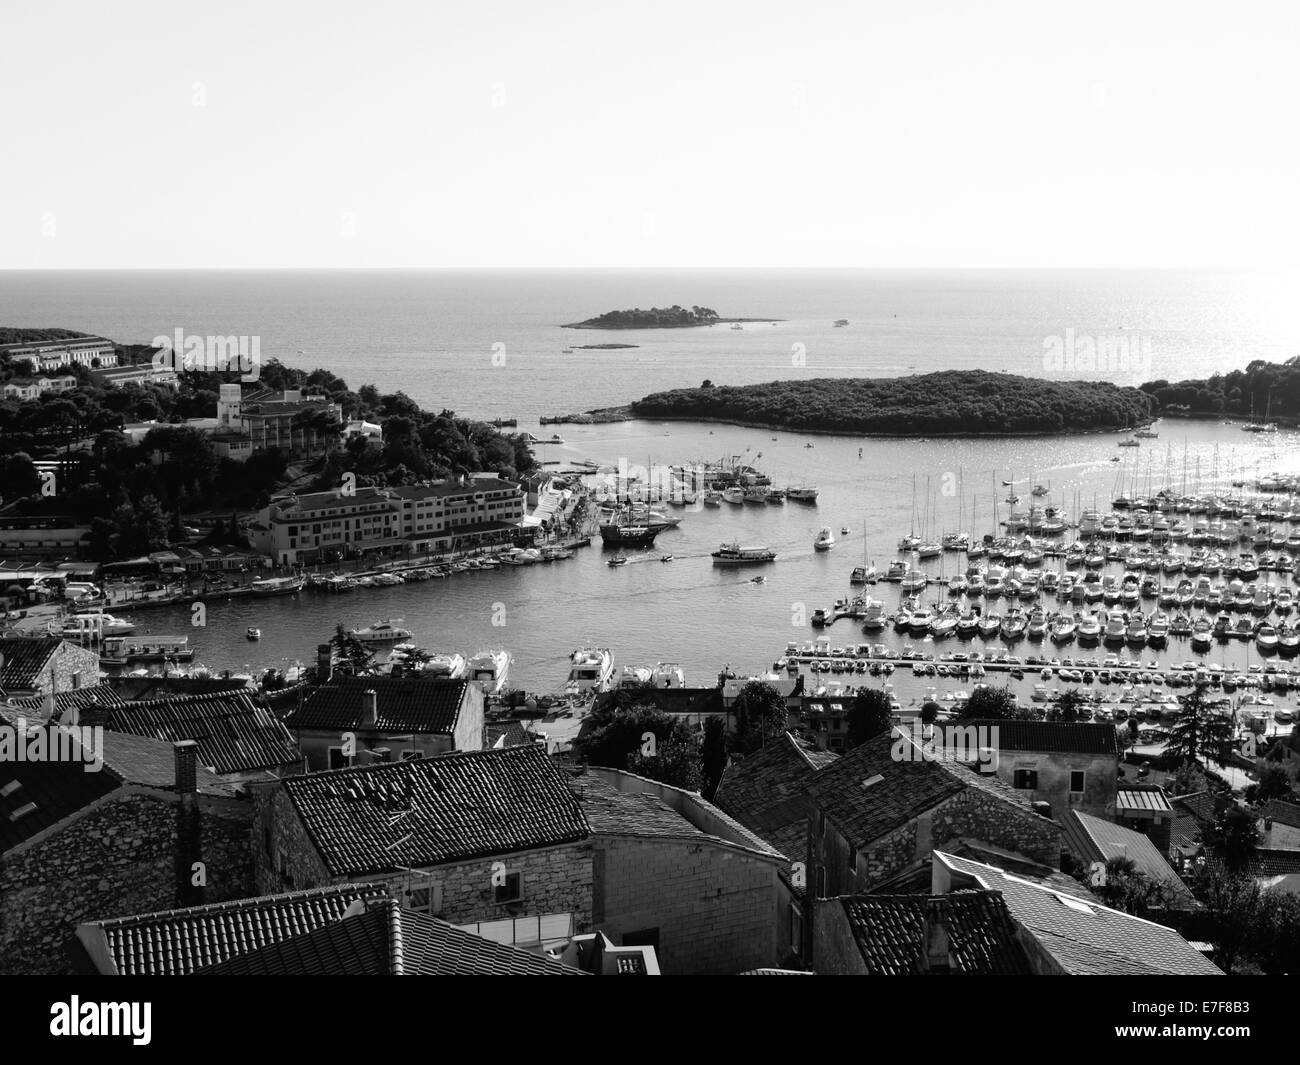 Vrsar port.  Both old and new city can be seen, along with parked boats and yachts - Stock Image